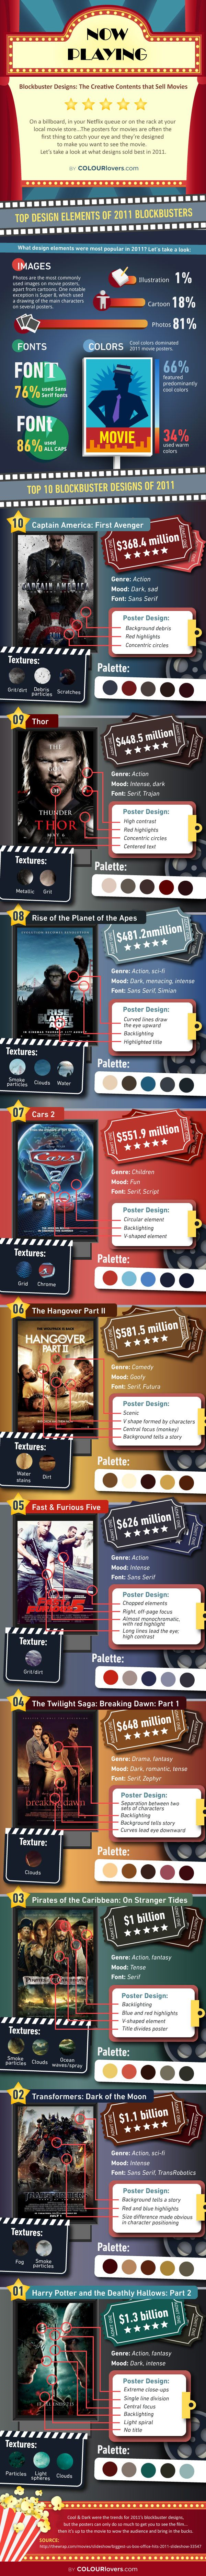 """""""The Psychology Behind Movie Poster Designs"""" infographic by Colour Lovers & featured on Fast Company. Could be used to teach both visual literacy and give students some pointers on how to design their own movie posters for a favorite book."""